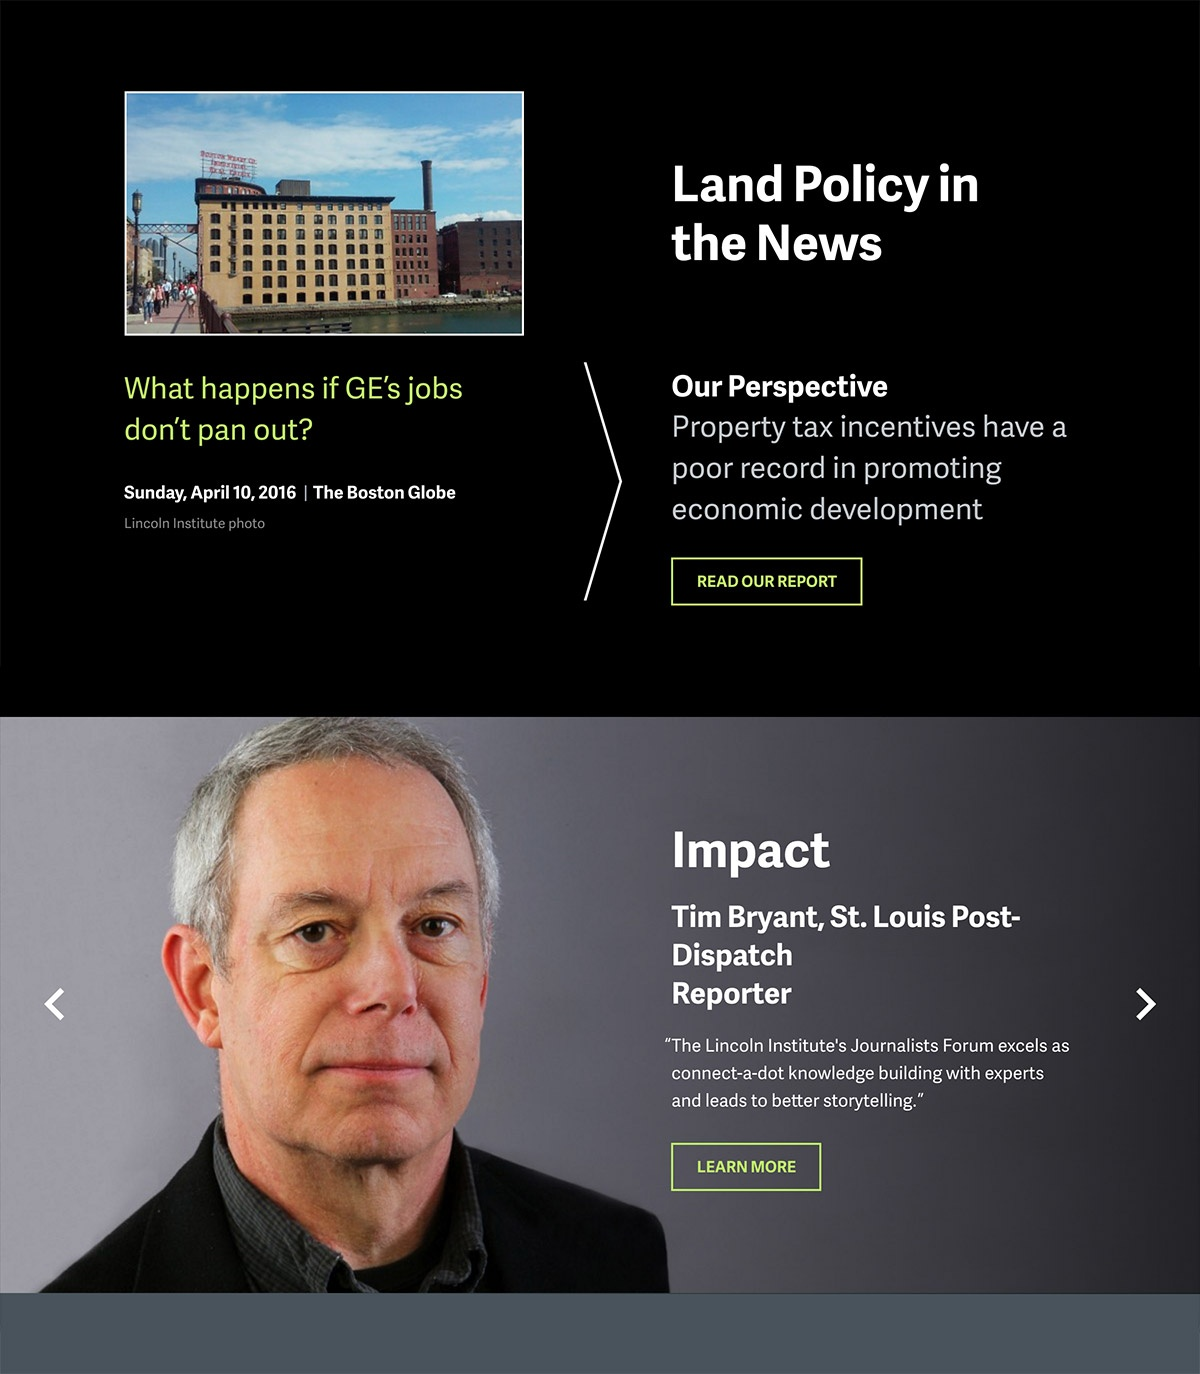 Lincoln Institute of Land Policy In the News Module